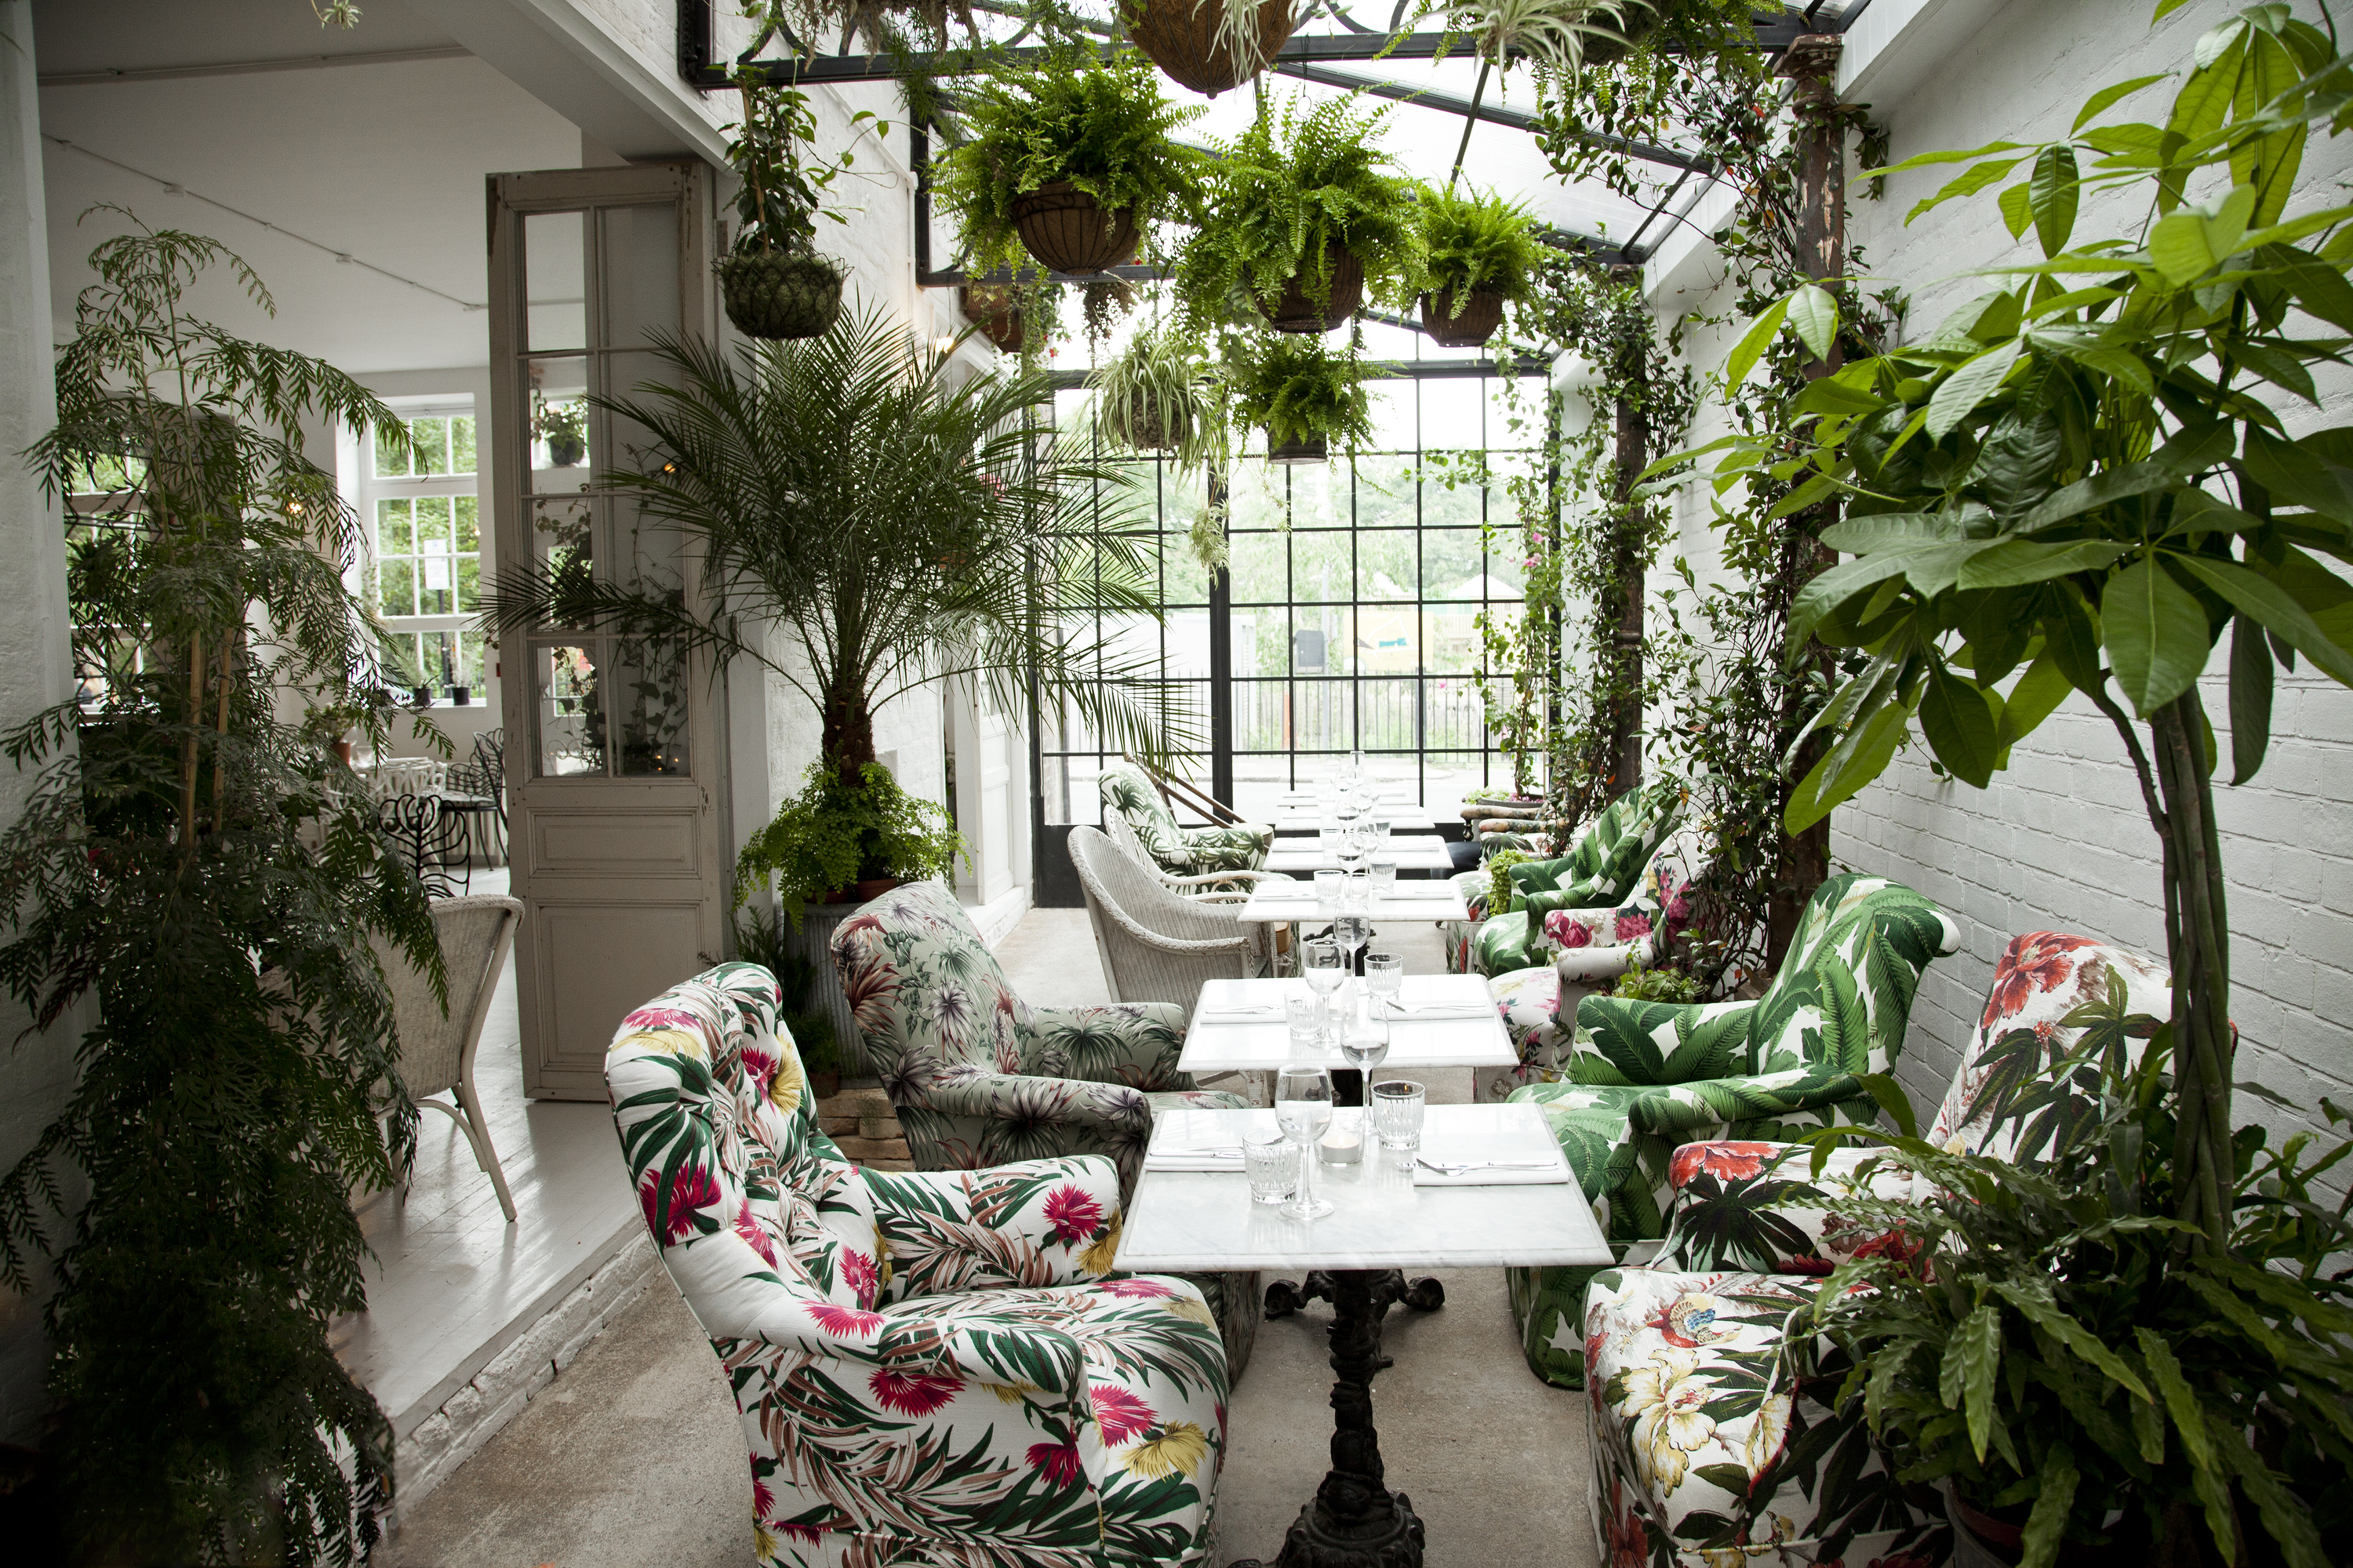 Best gardens in london restaurants for Garden trees london